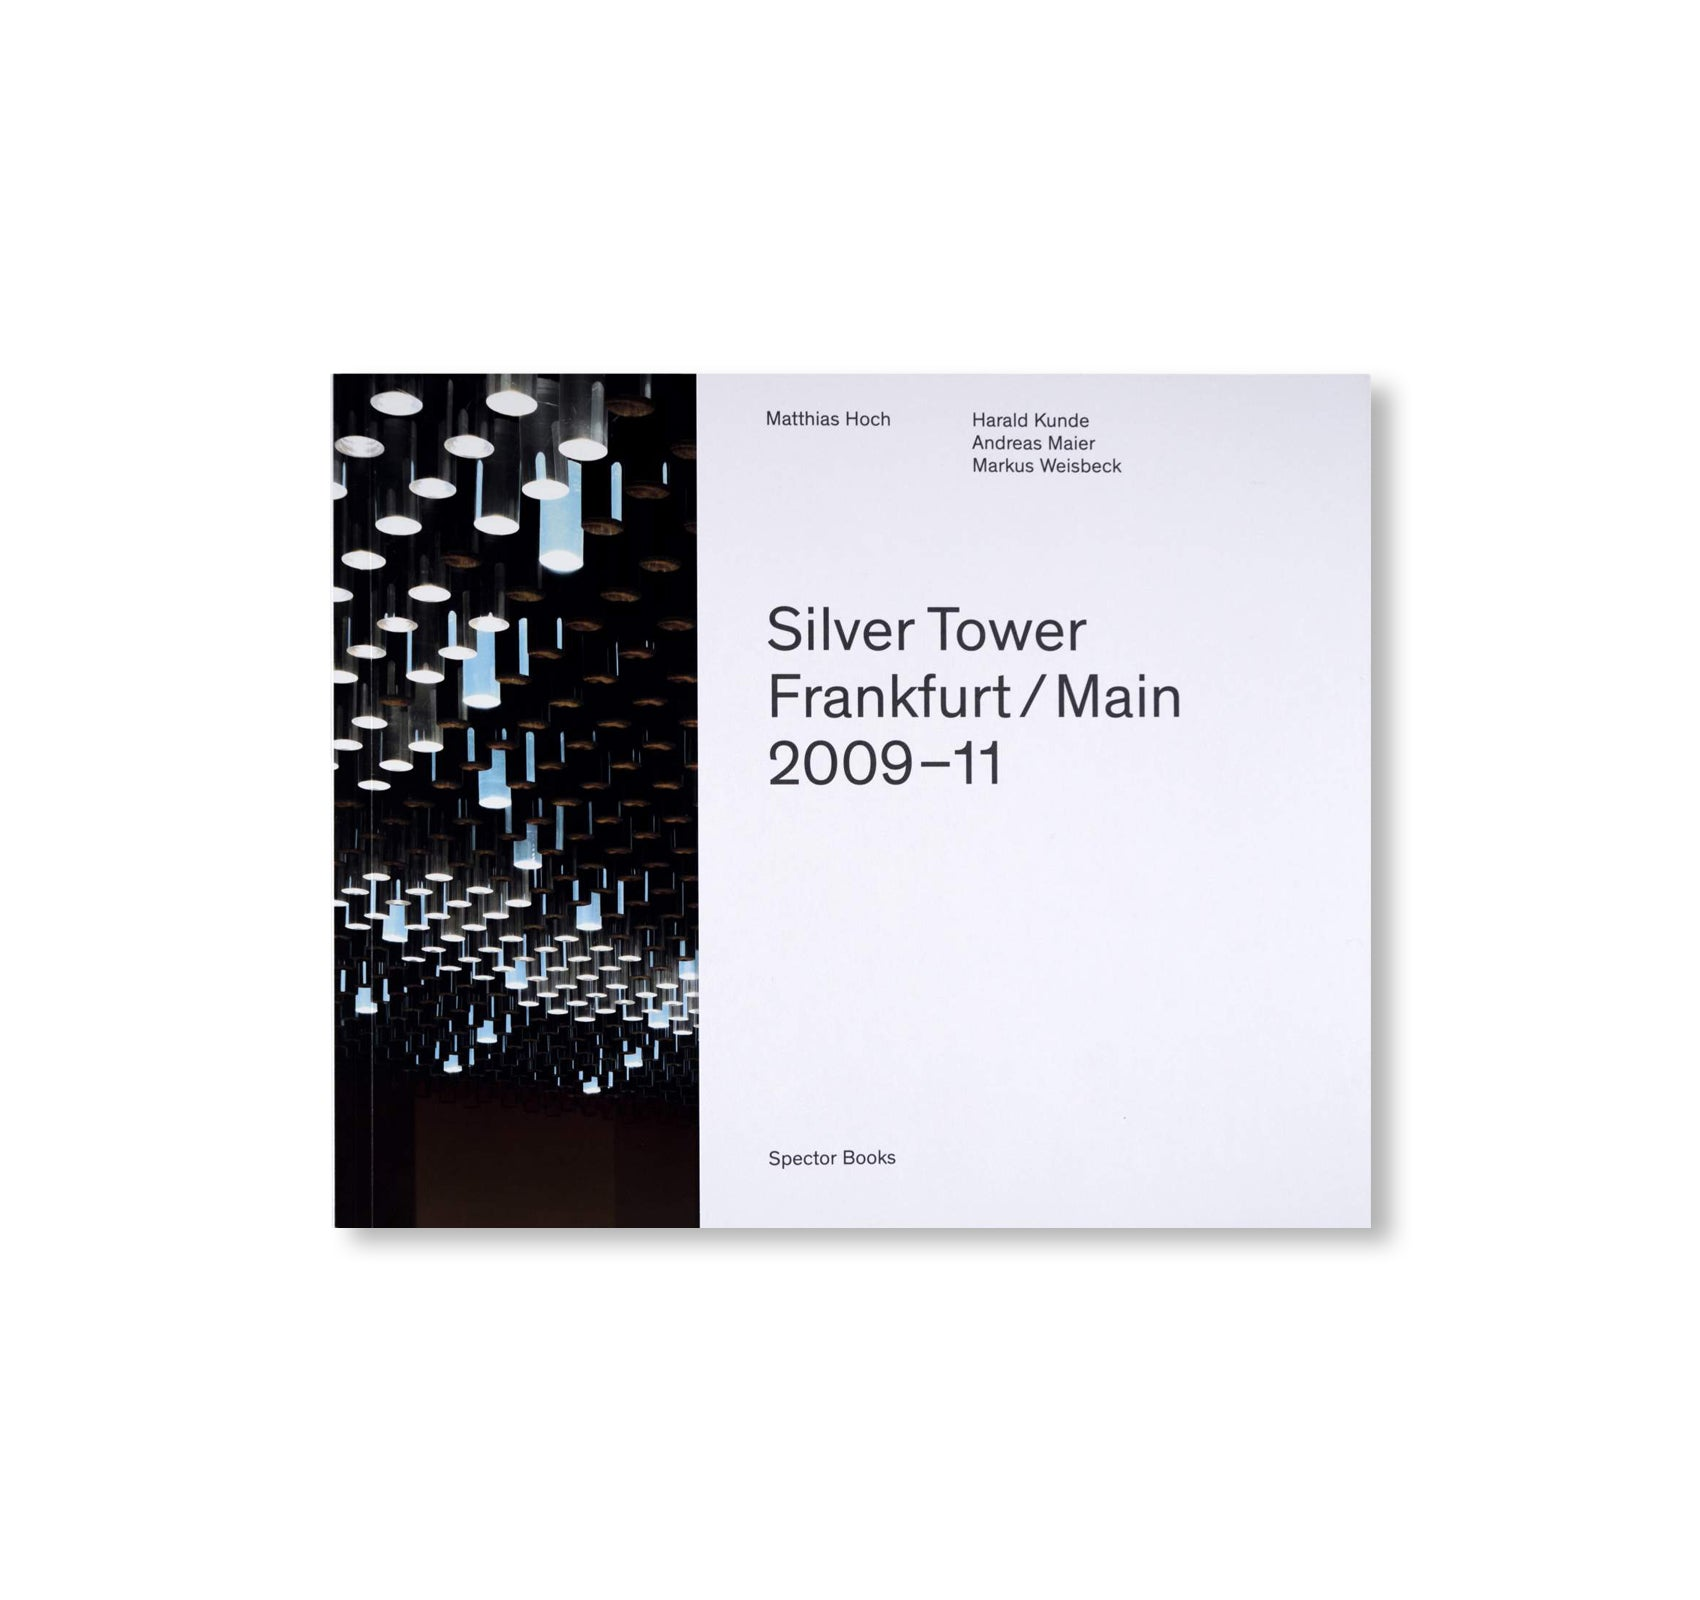 SILVER TOWER by Matthias Hoch